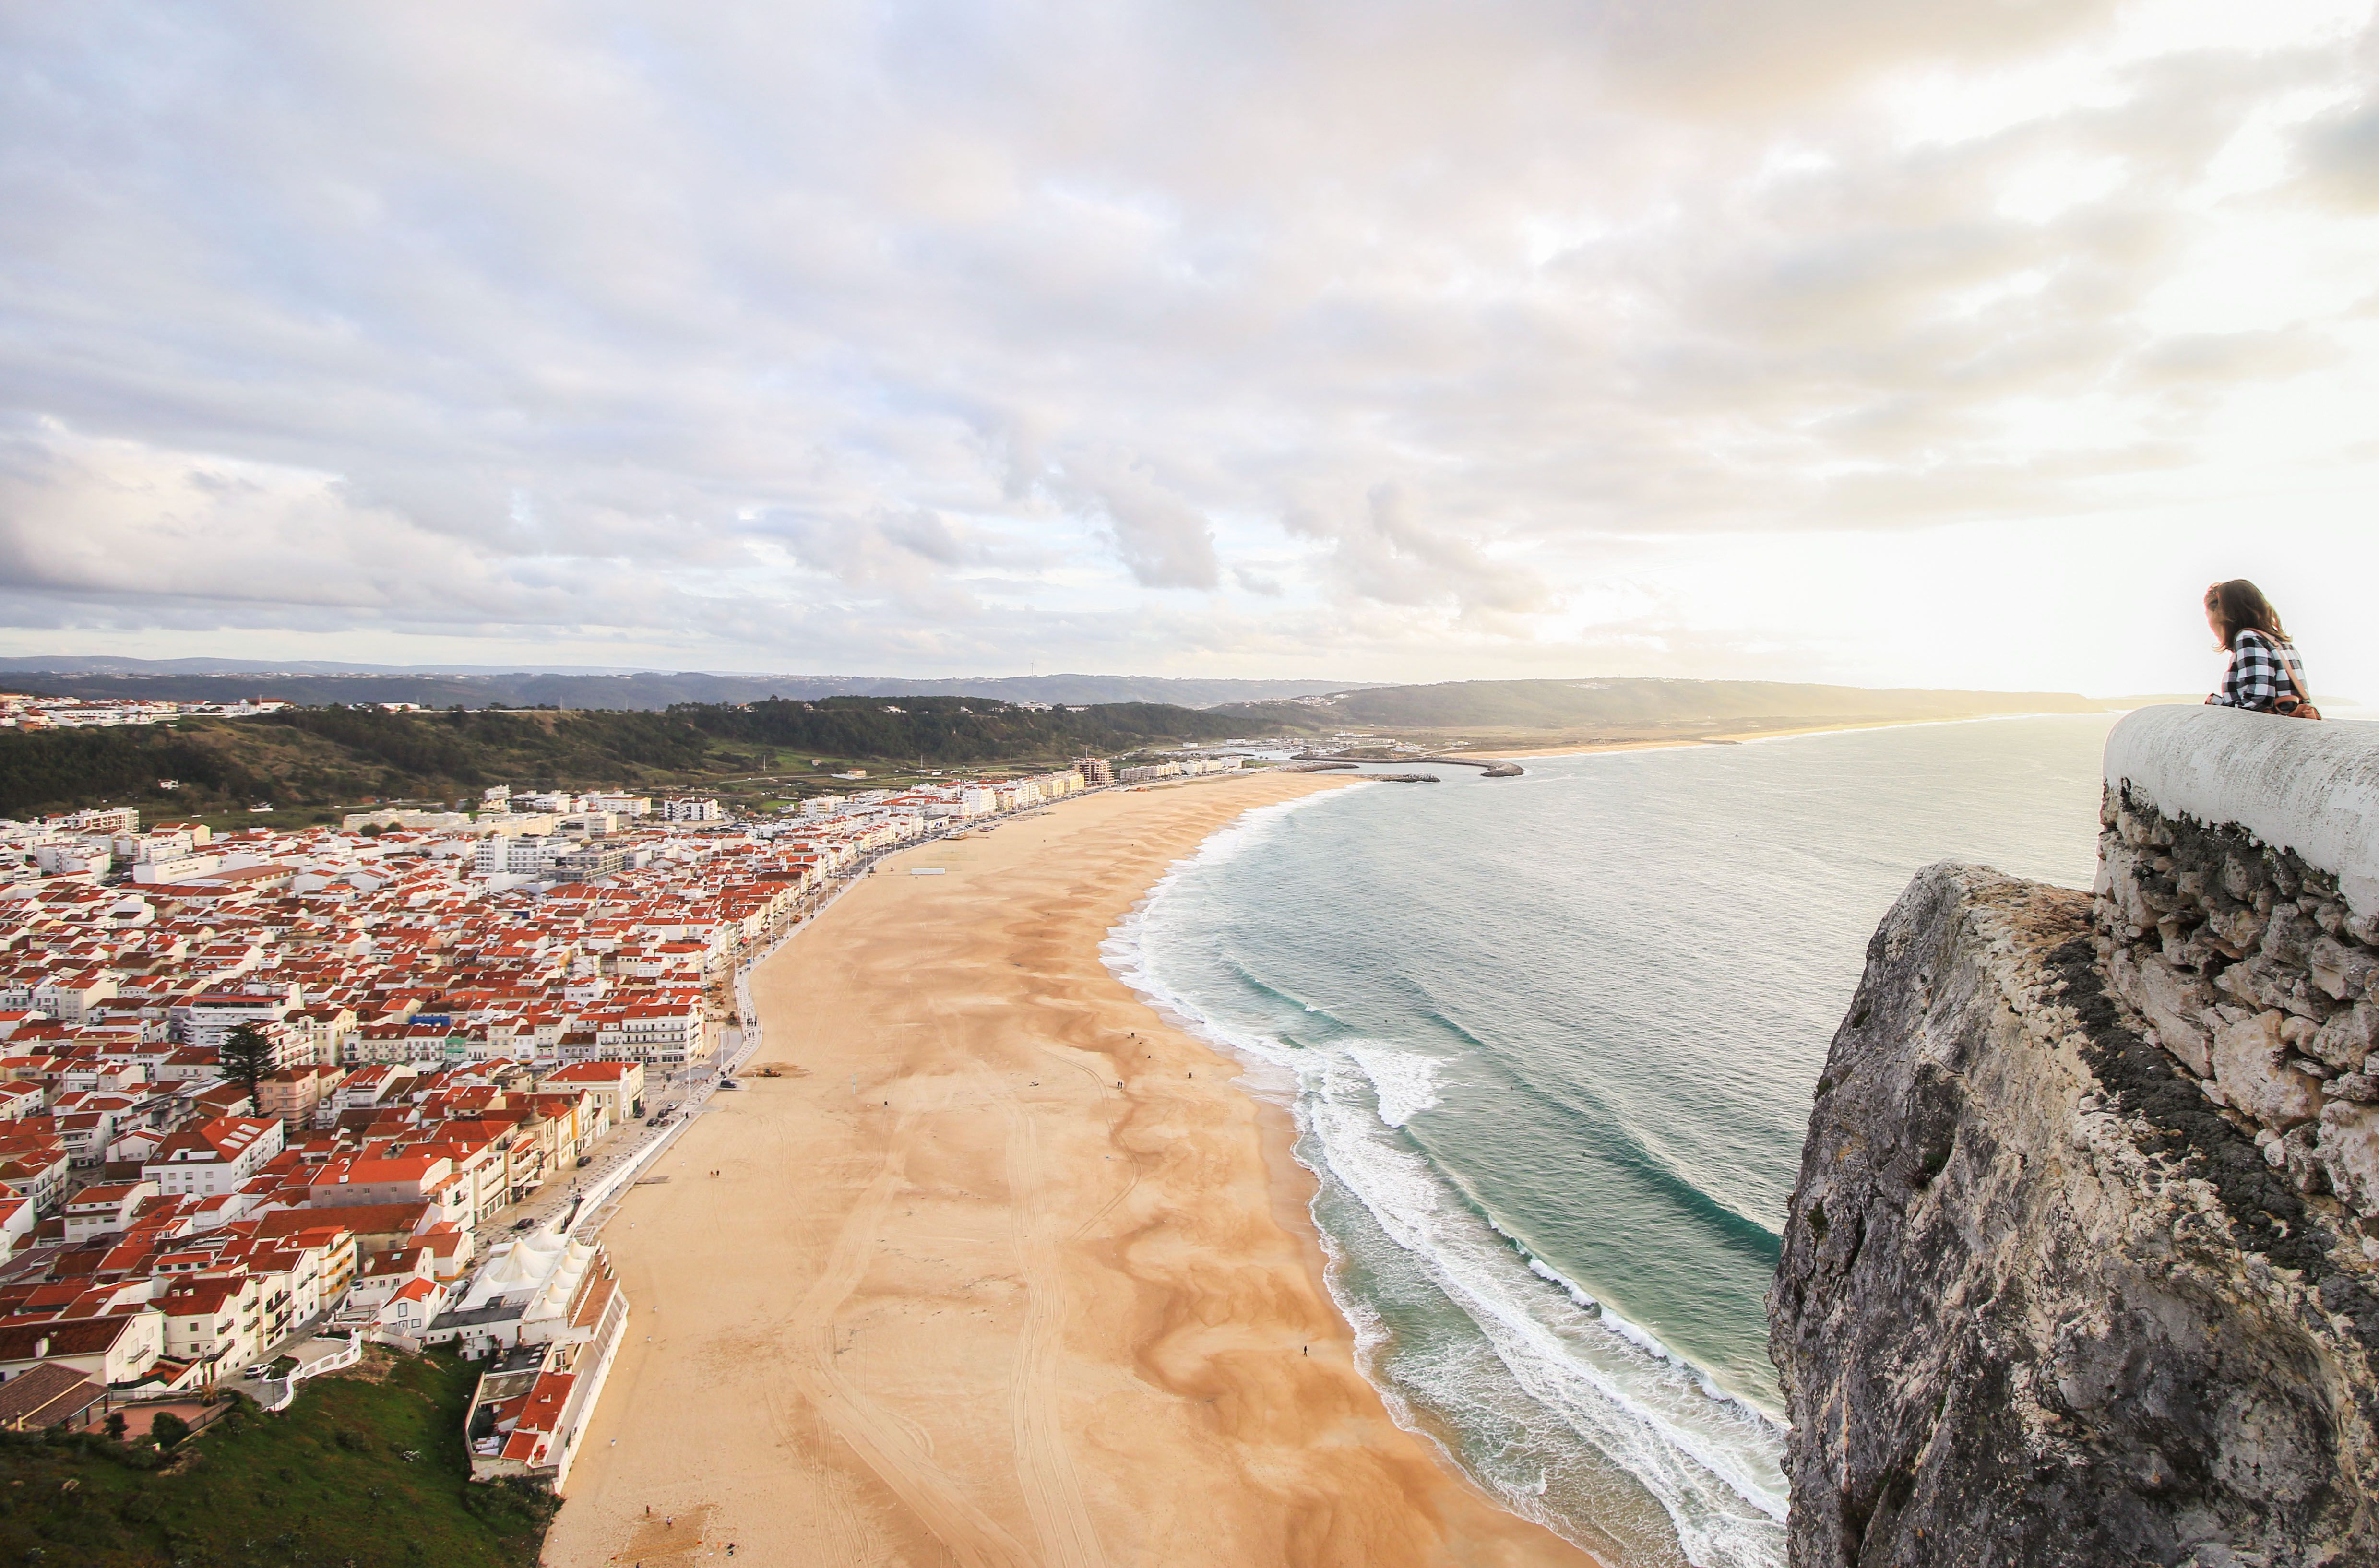 View from the top of the Funicular in Nazaré